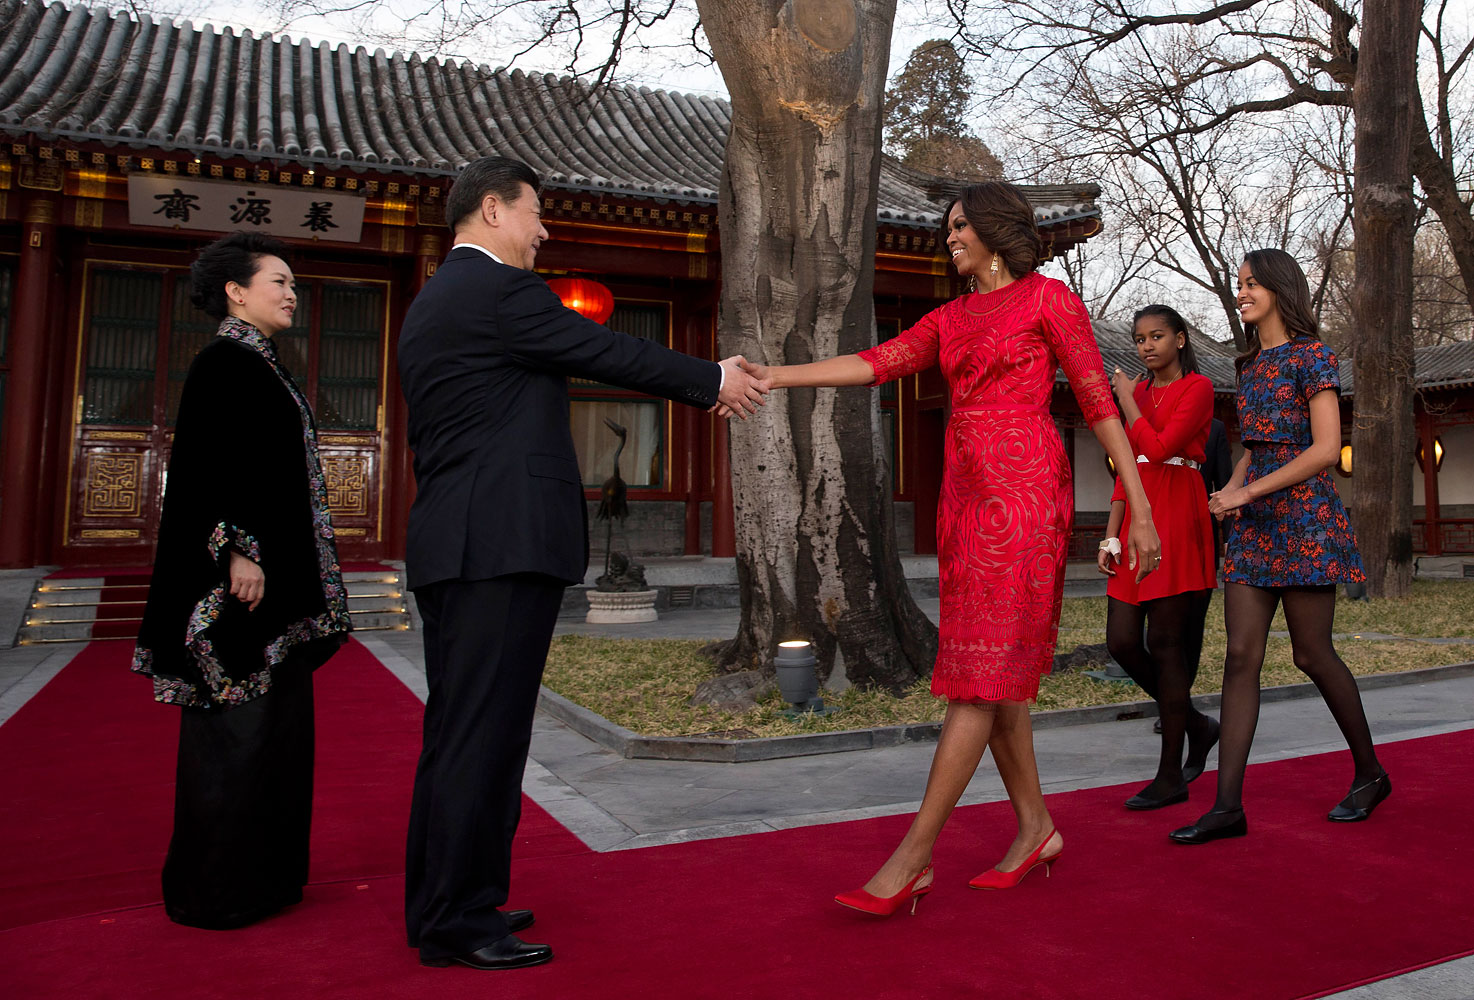 Obama, in a stunning red dress and matching shoes, greets Chinese President Xi Jinping and his wife Peng Liyuan at the Diaoyutai State guest house in Beijing, March 21, 2014.